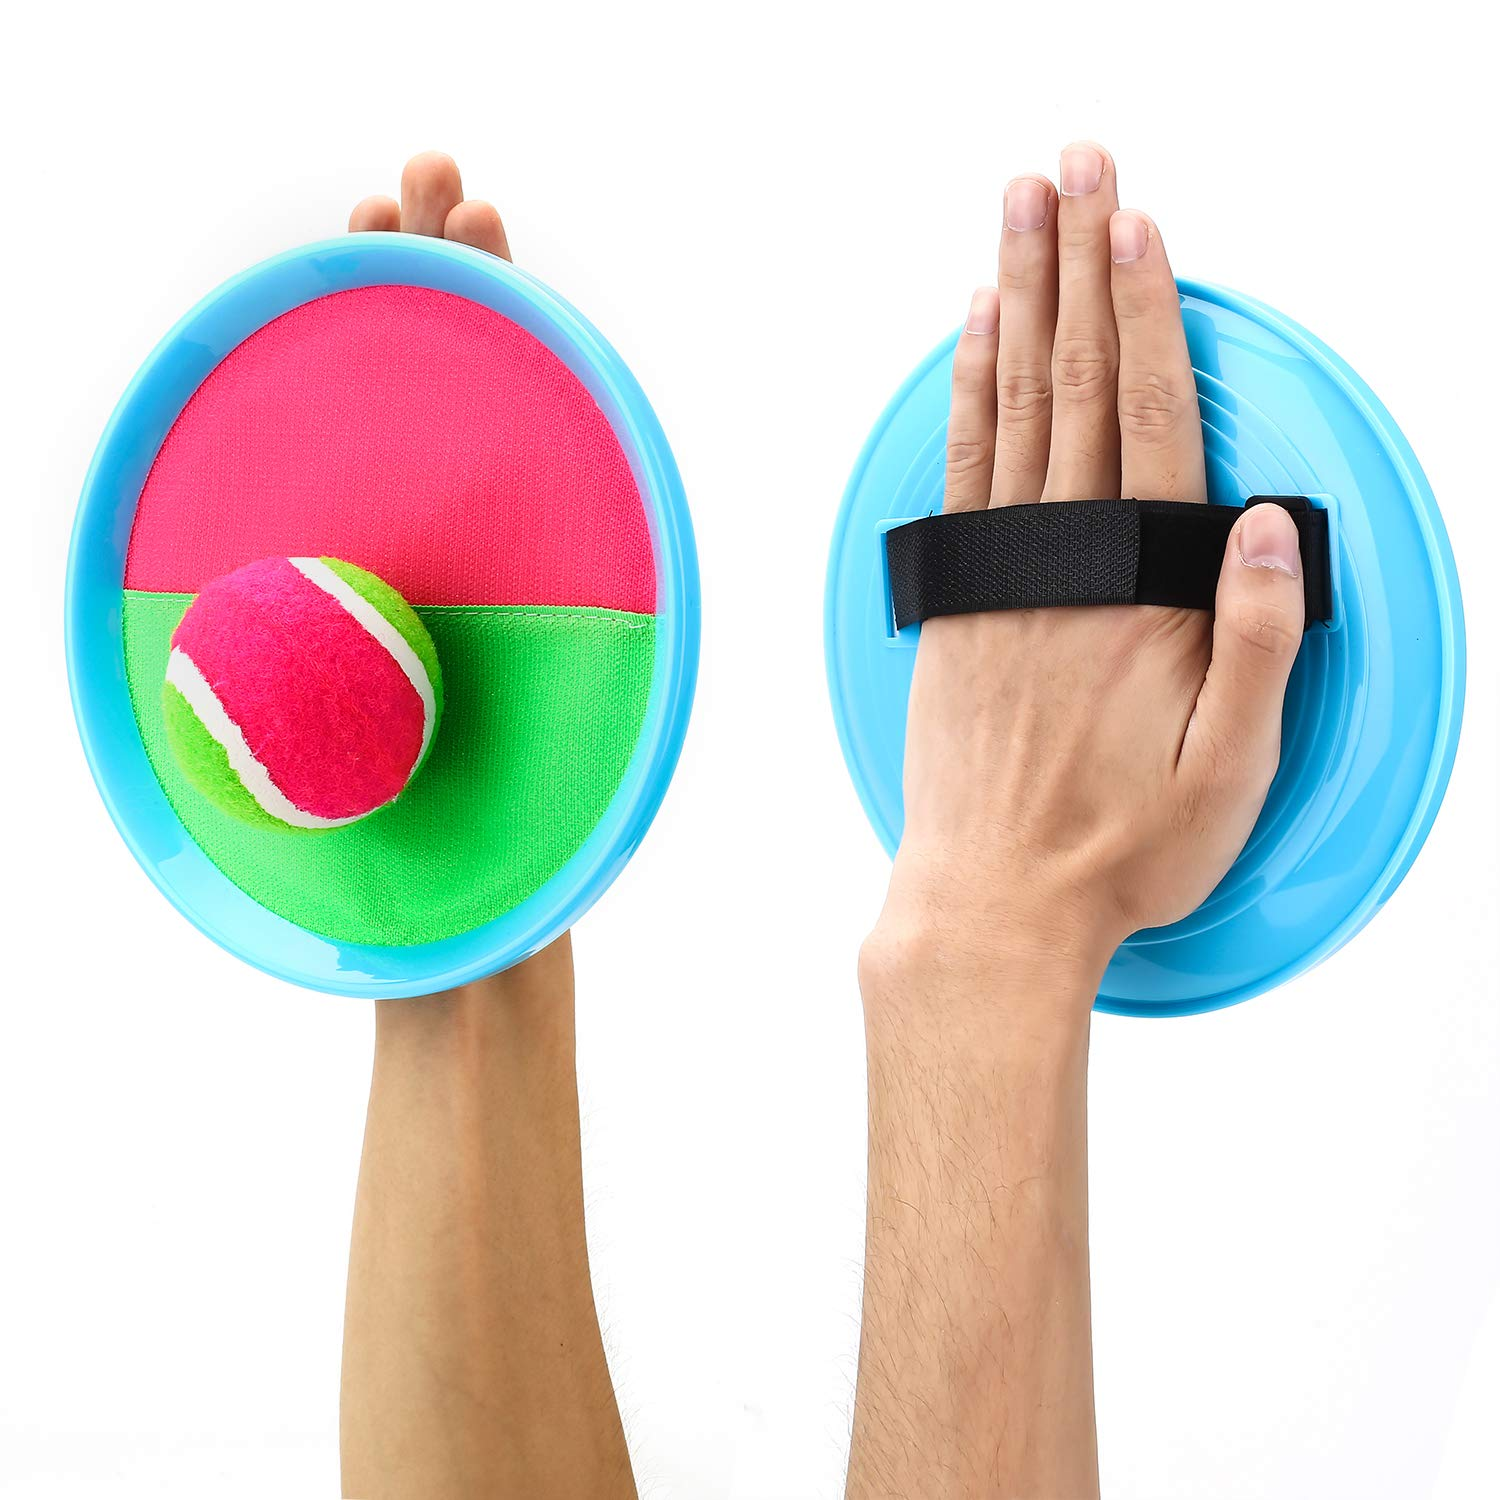 Ayeboovi Paddle Toss and Catch Ball Set for Kids- Self Stick Paddle Game with 4 Paddles, 4 Balls and 1 Storage Bag for Children by Ayeboovi (Image #3)